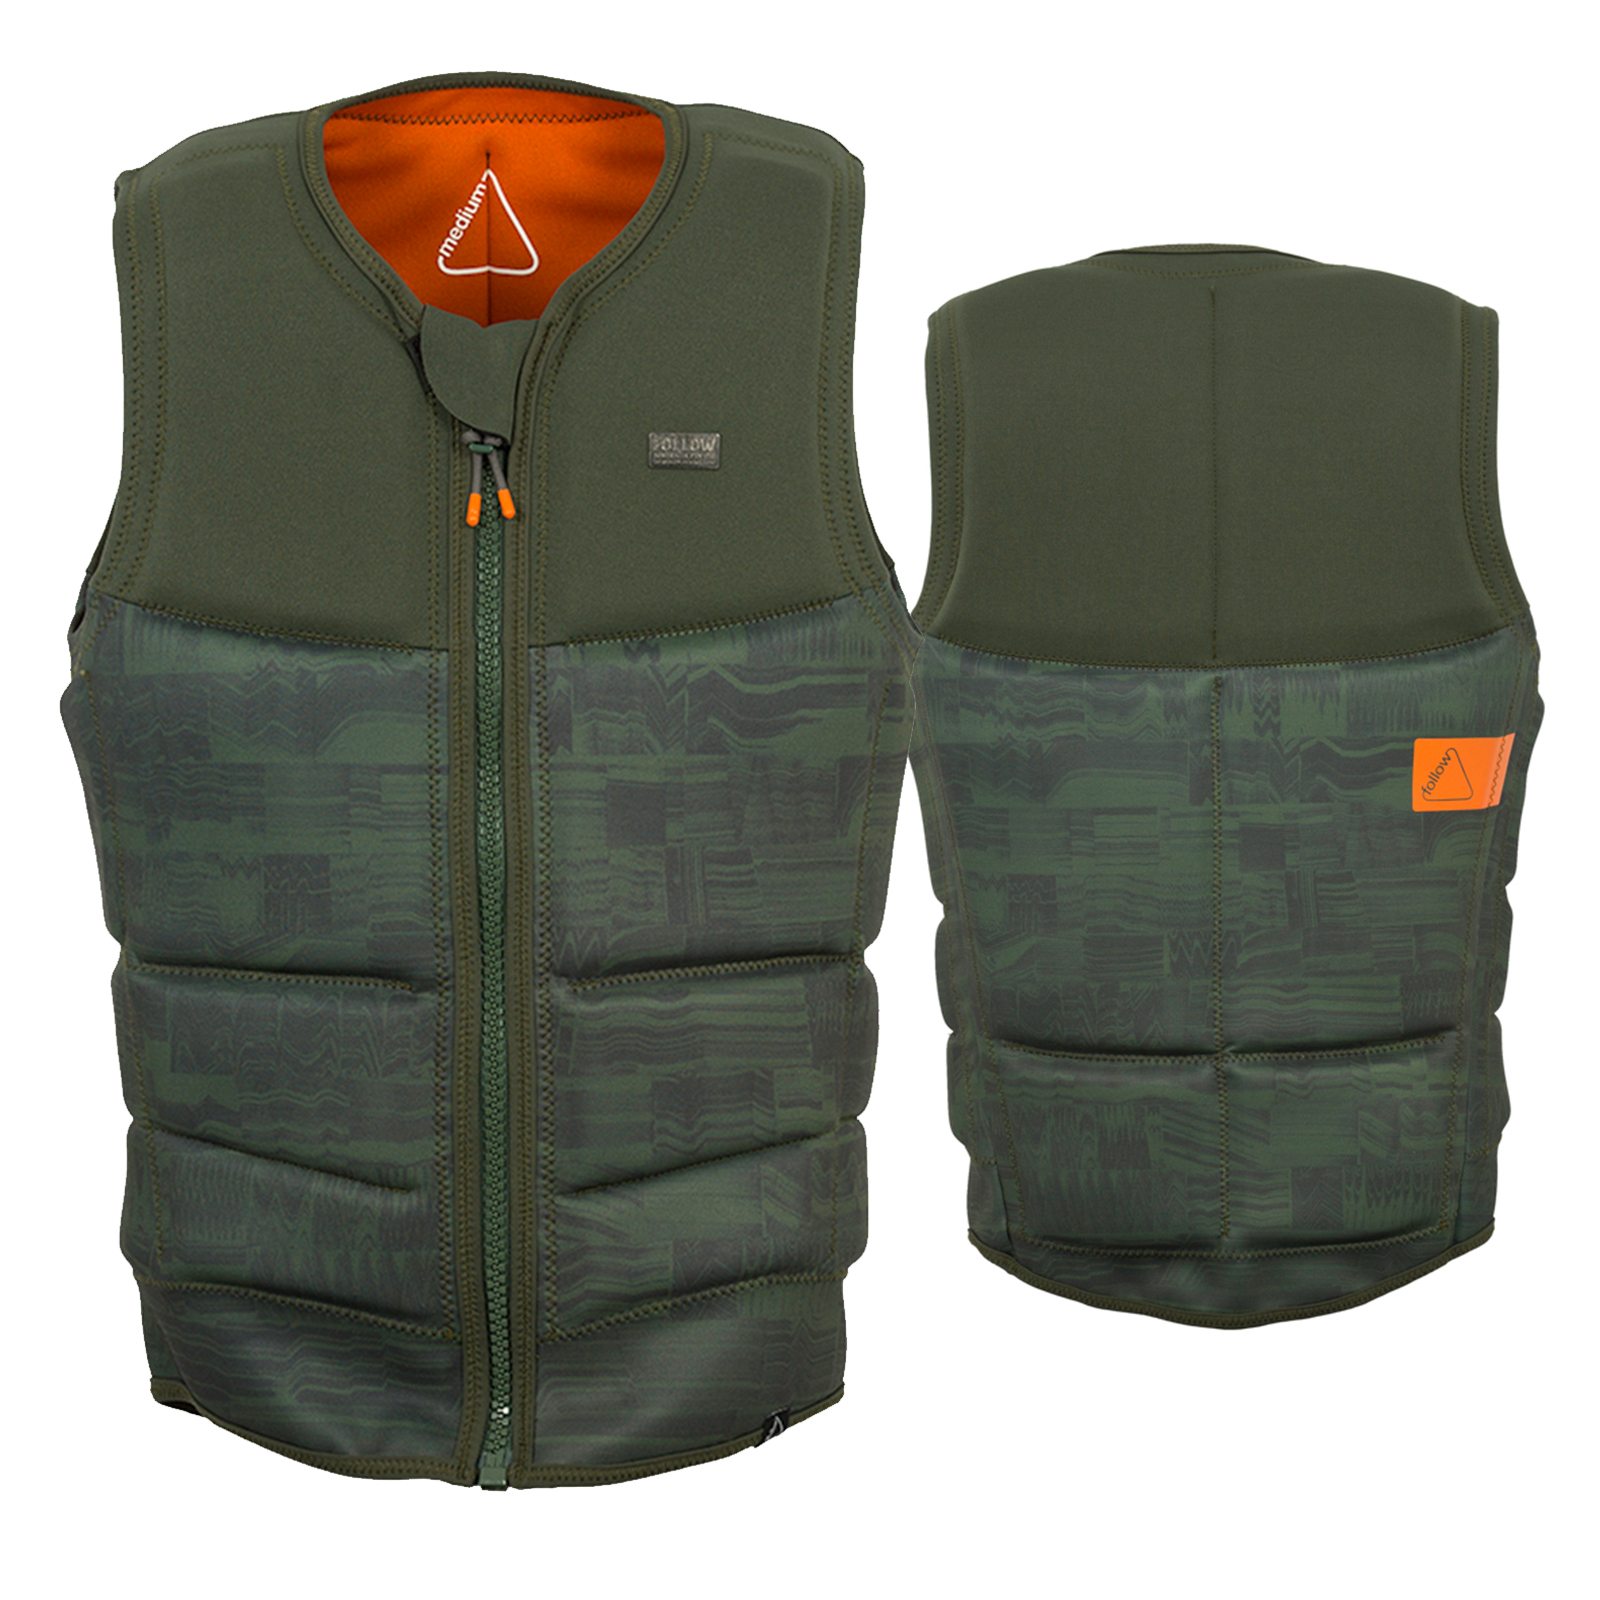 STOW COOK CE IMPACT VEST OLIVE FOLLOW 2018